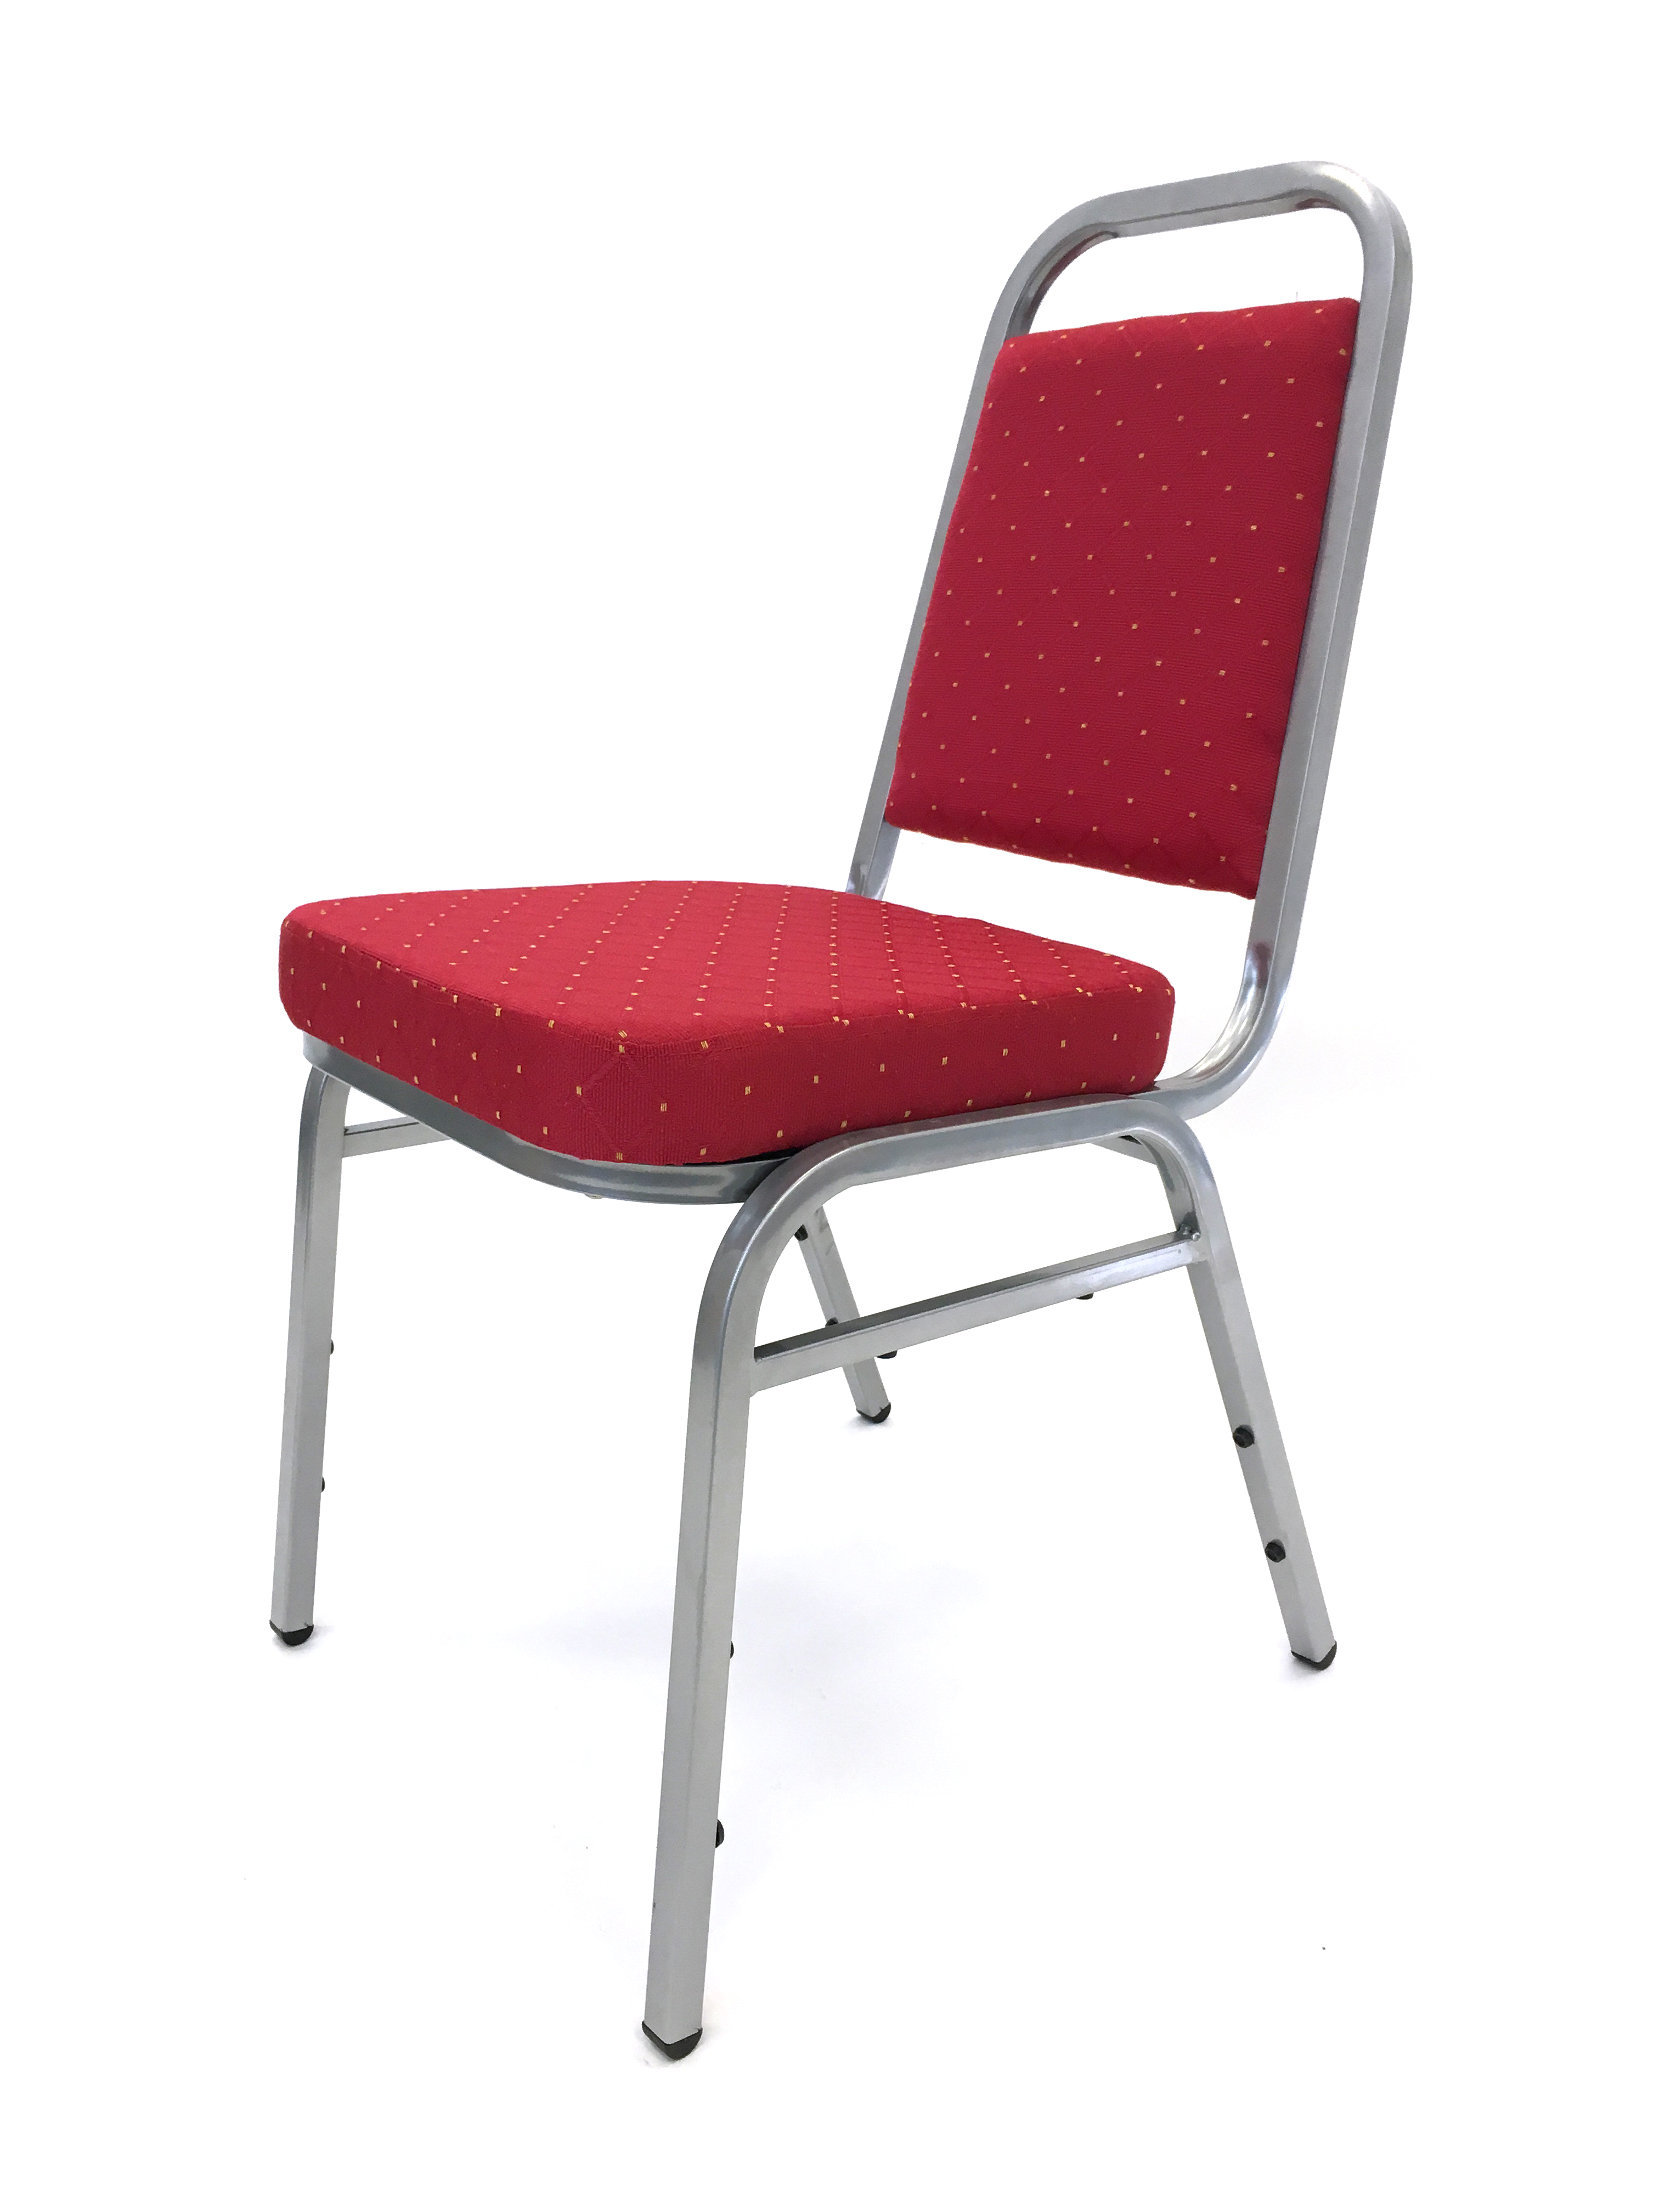 Red Budget Banquet Chair Hire Weddings Event Chairs BE Event Hire - Banqueting chair hire